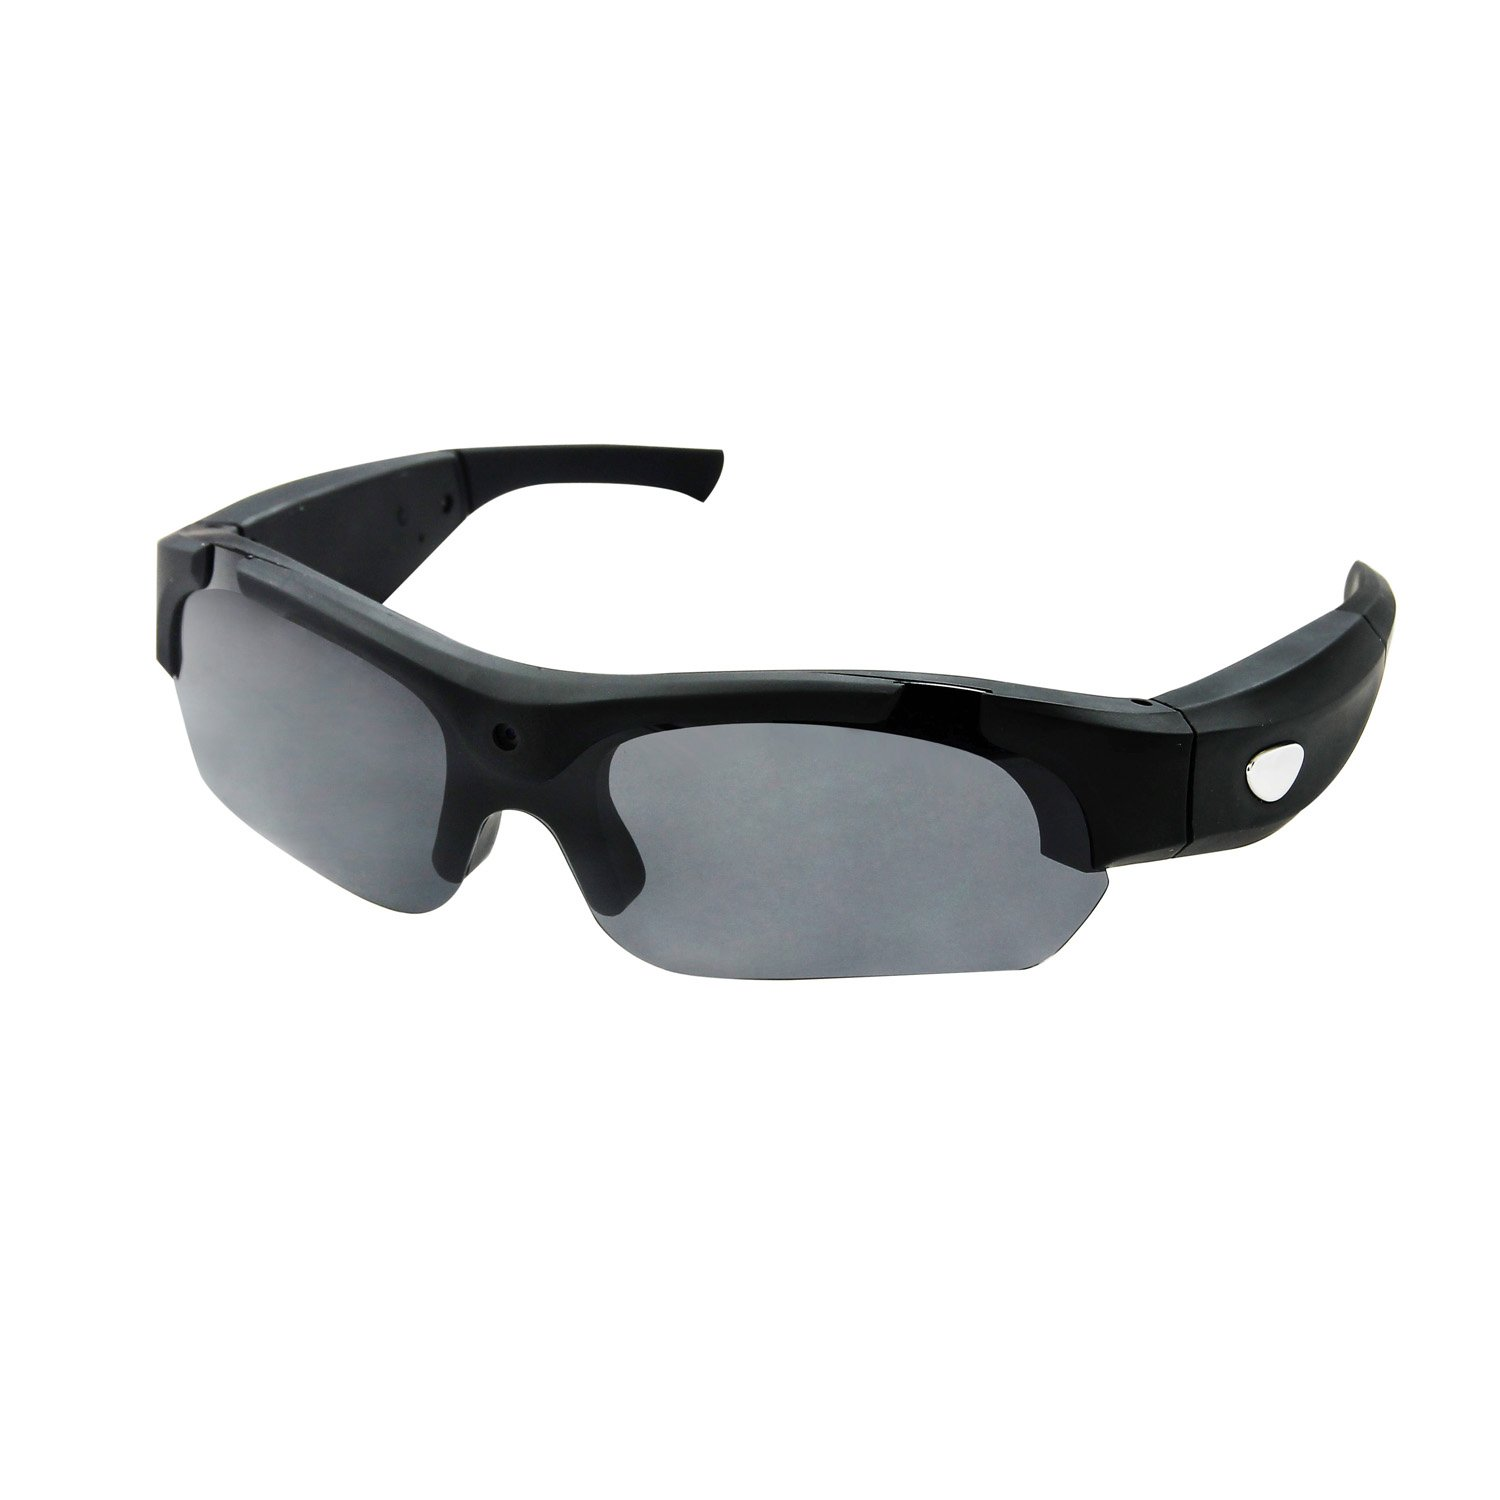 Napoer HD 1080P Eyewear Video Recorder Sunglasses Camera Recording DVR Glasses Camcorder+ Free One Pair Lens